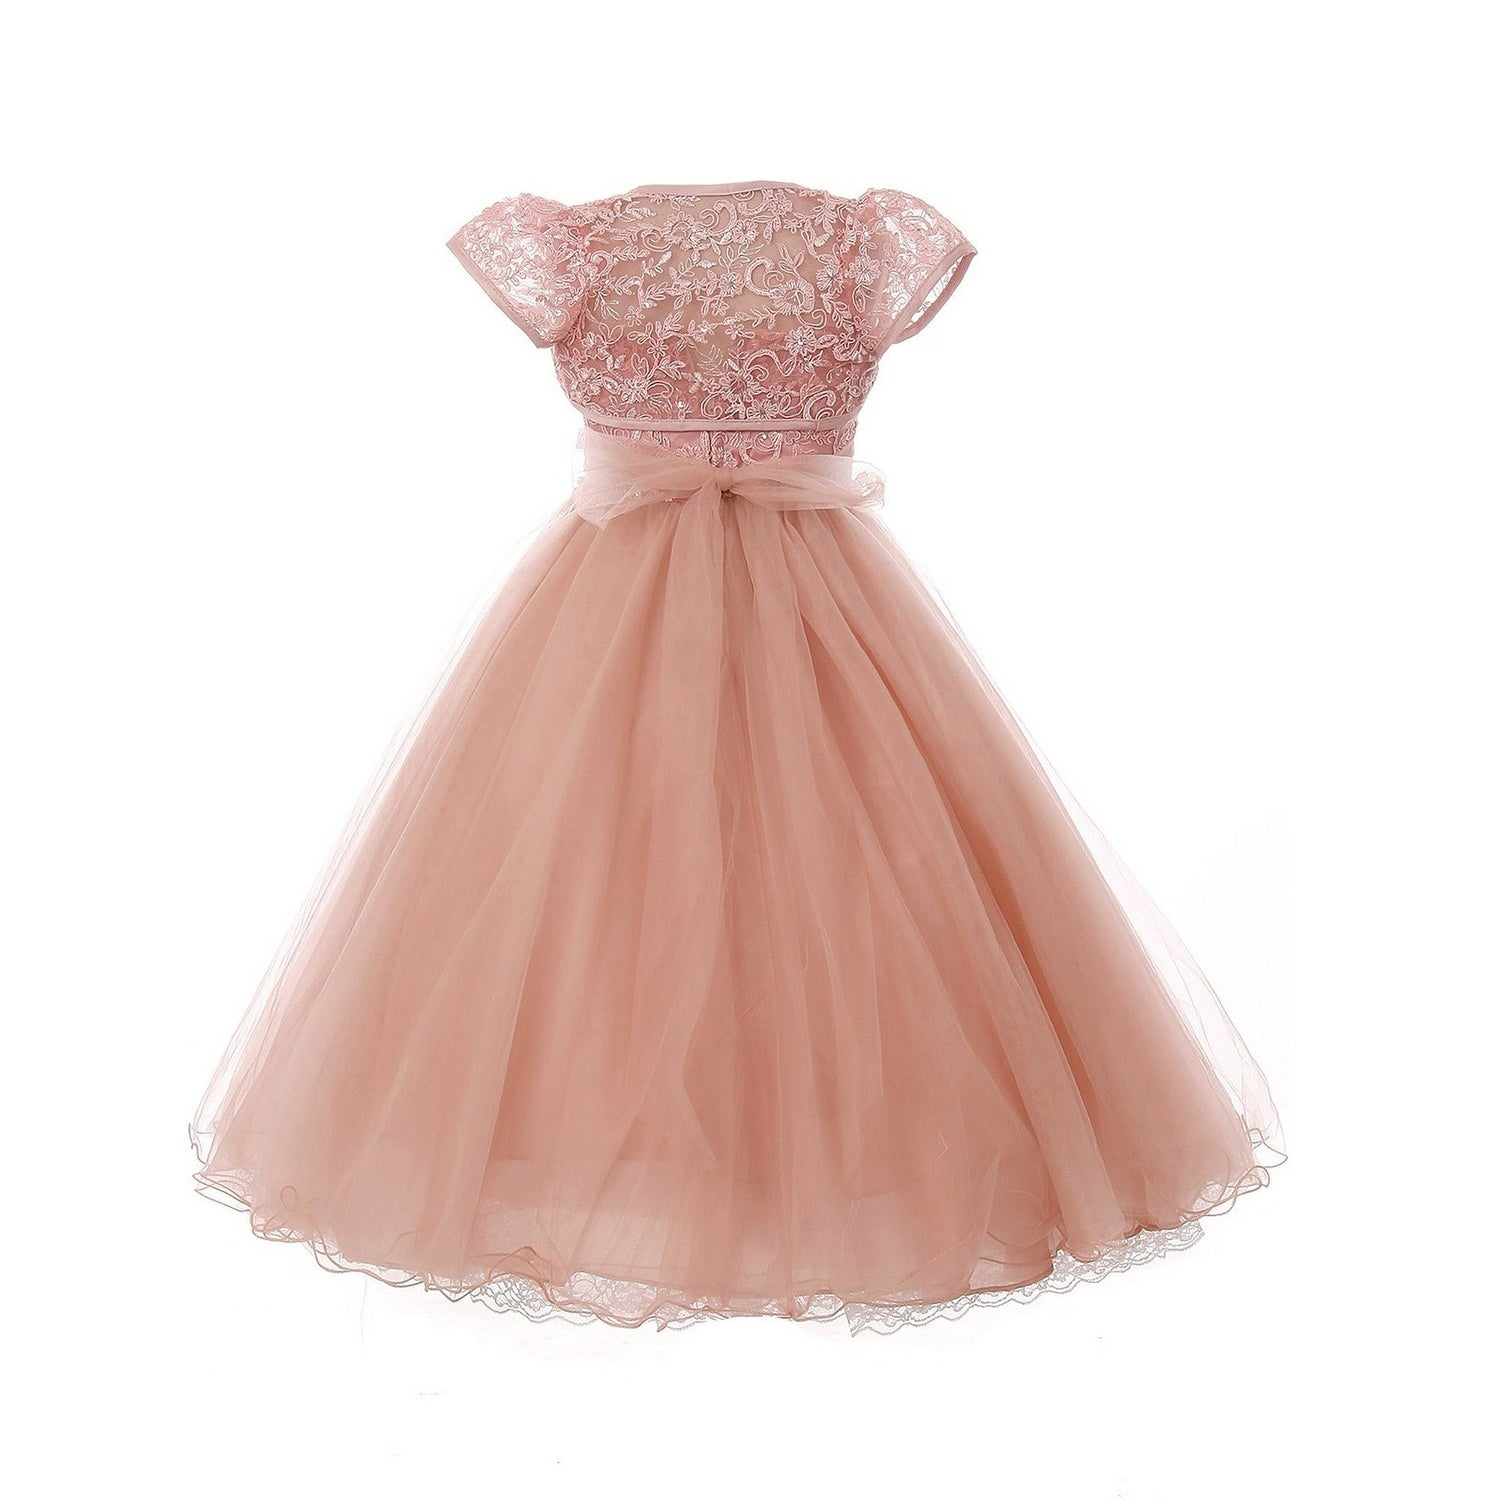 Chic Baby Little Girls Dusty Rose Sparkle Embroidery Flower Girl Dress